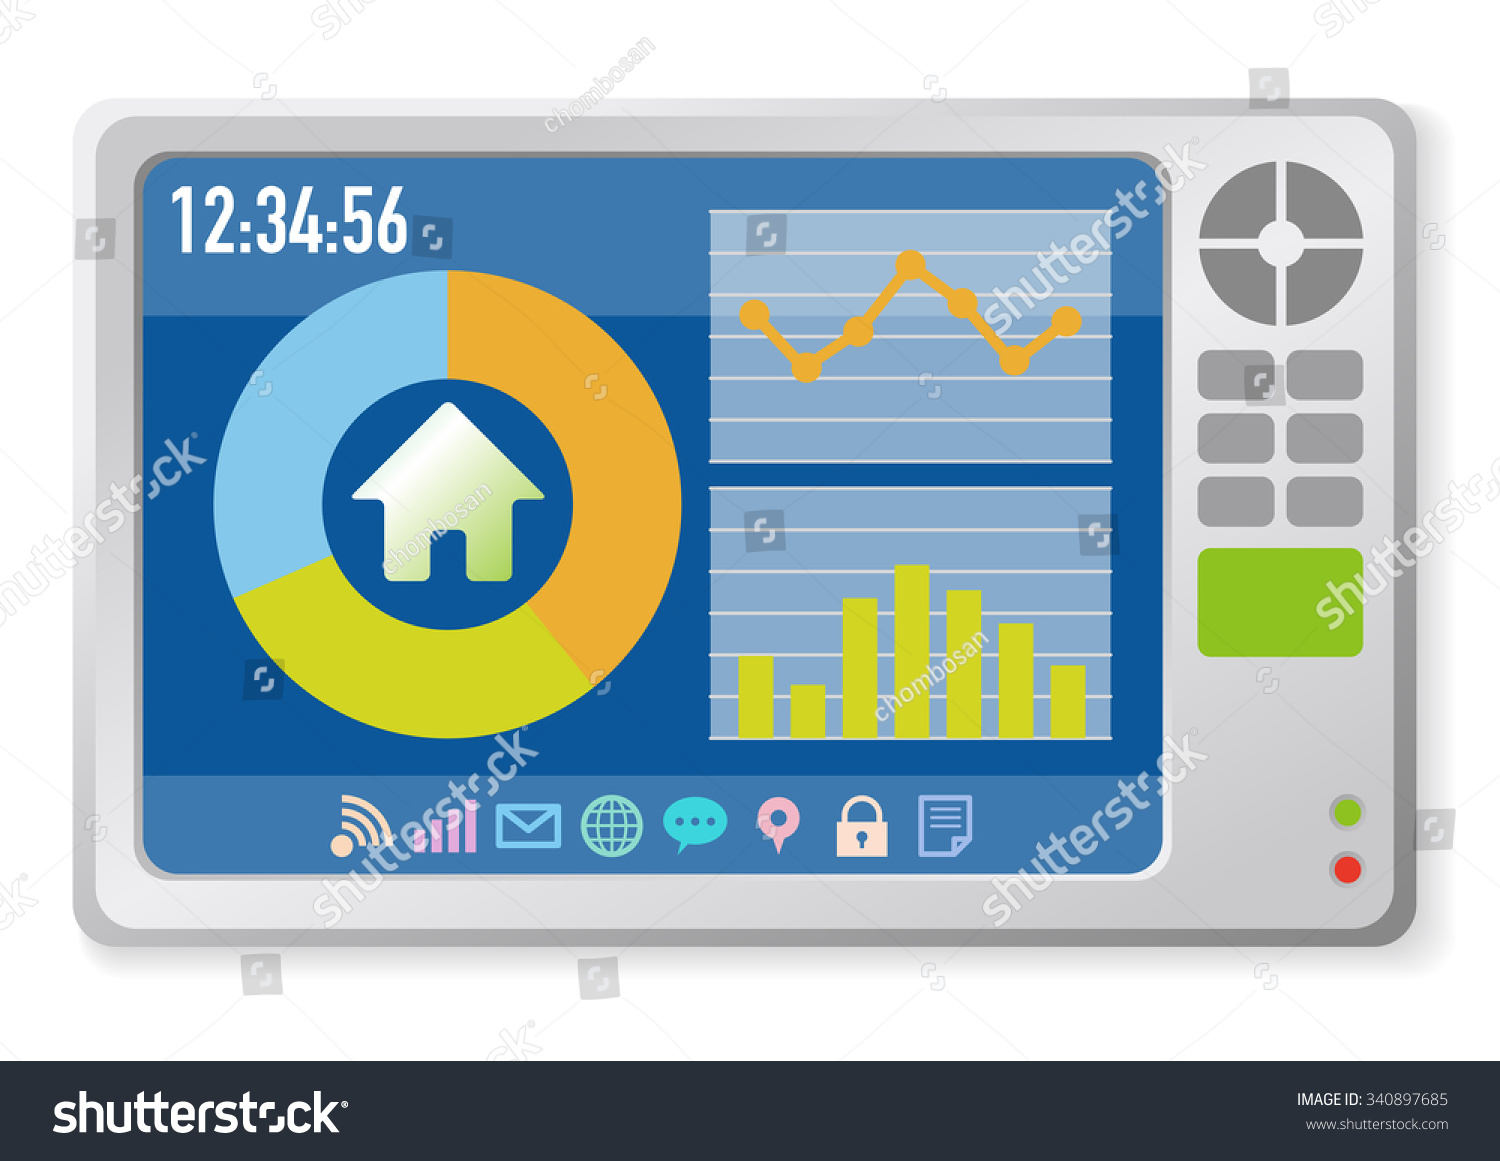 Home Display Smart Home Monitor Smart Stock Vector 340897685 ...